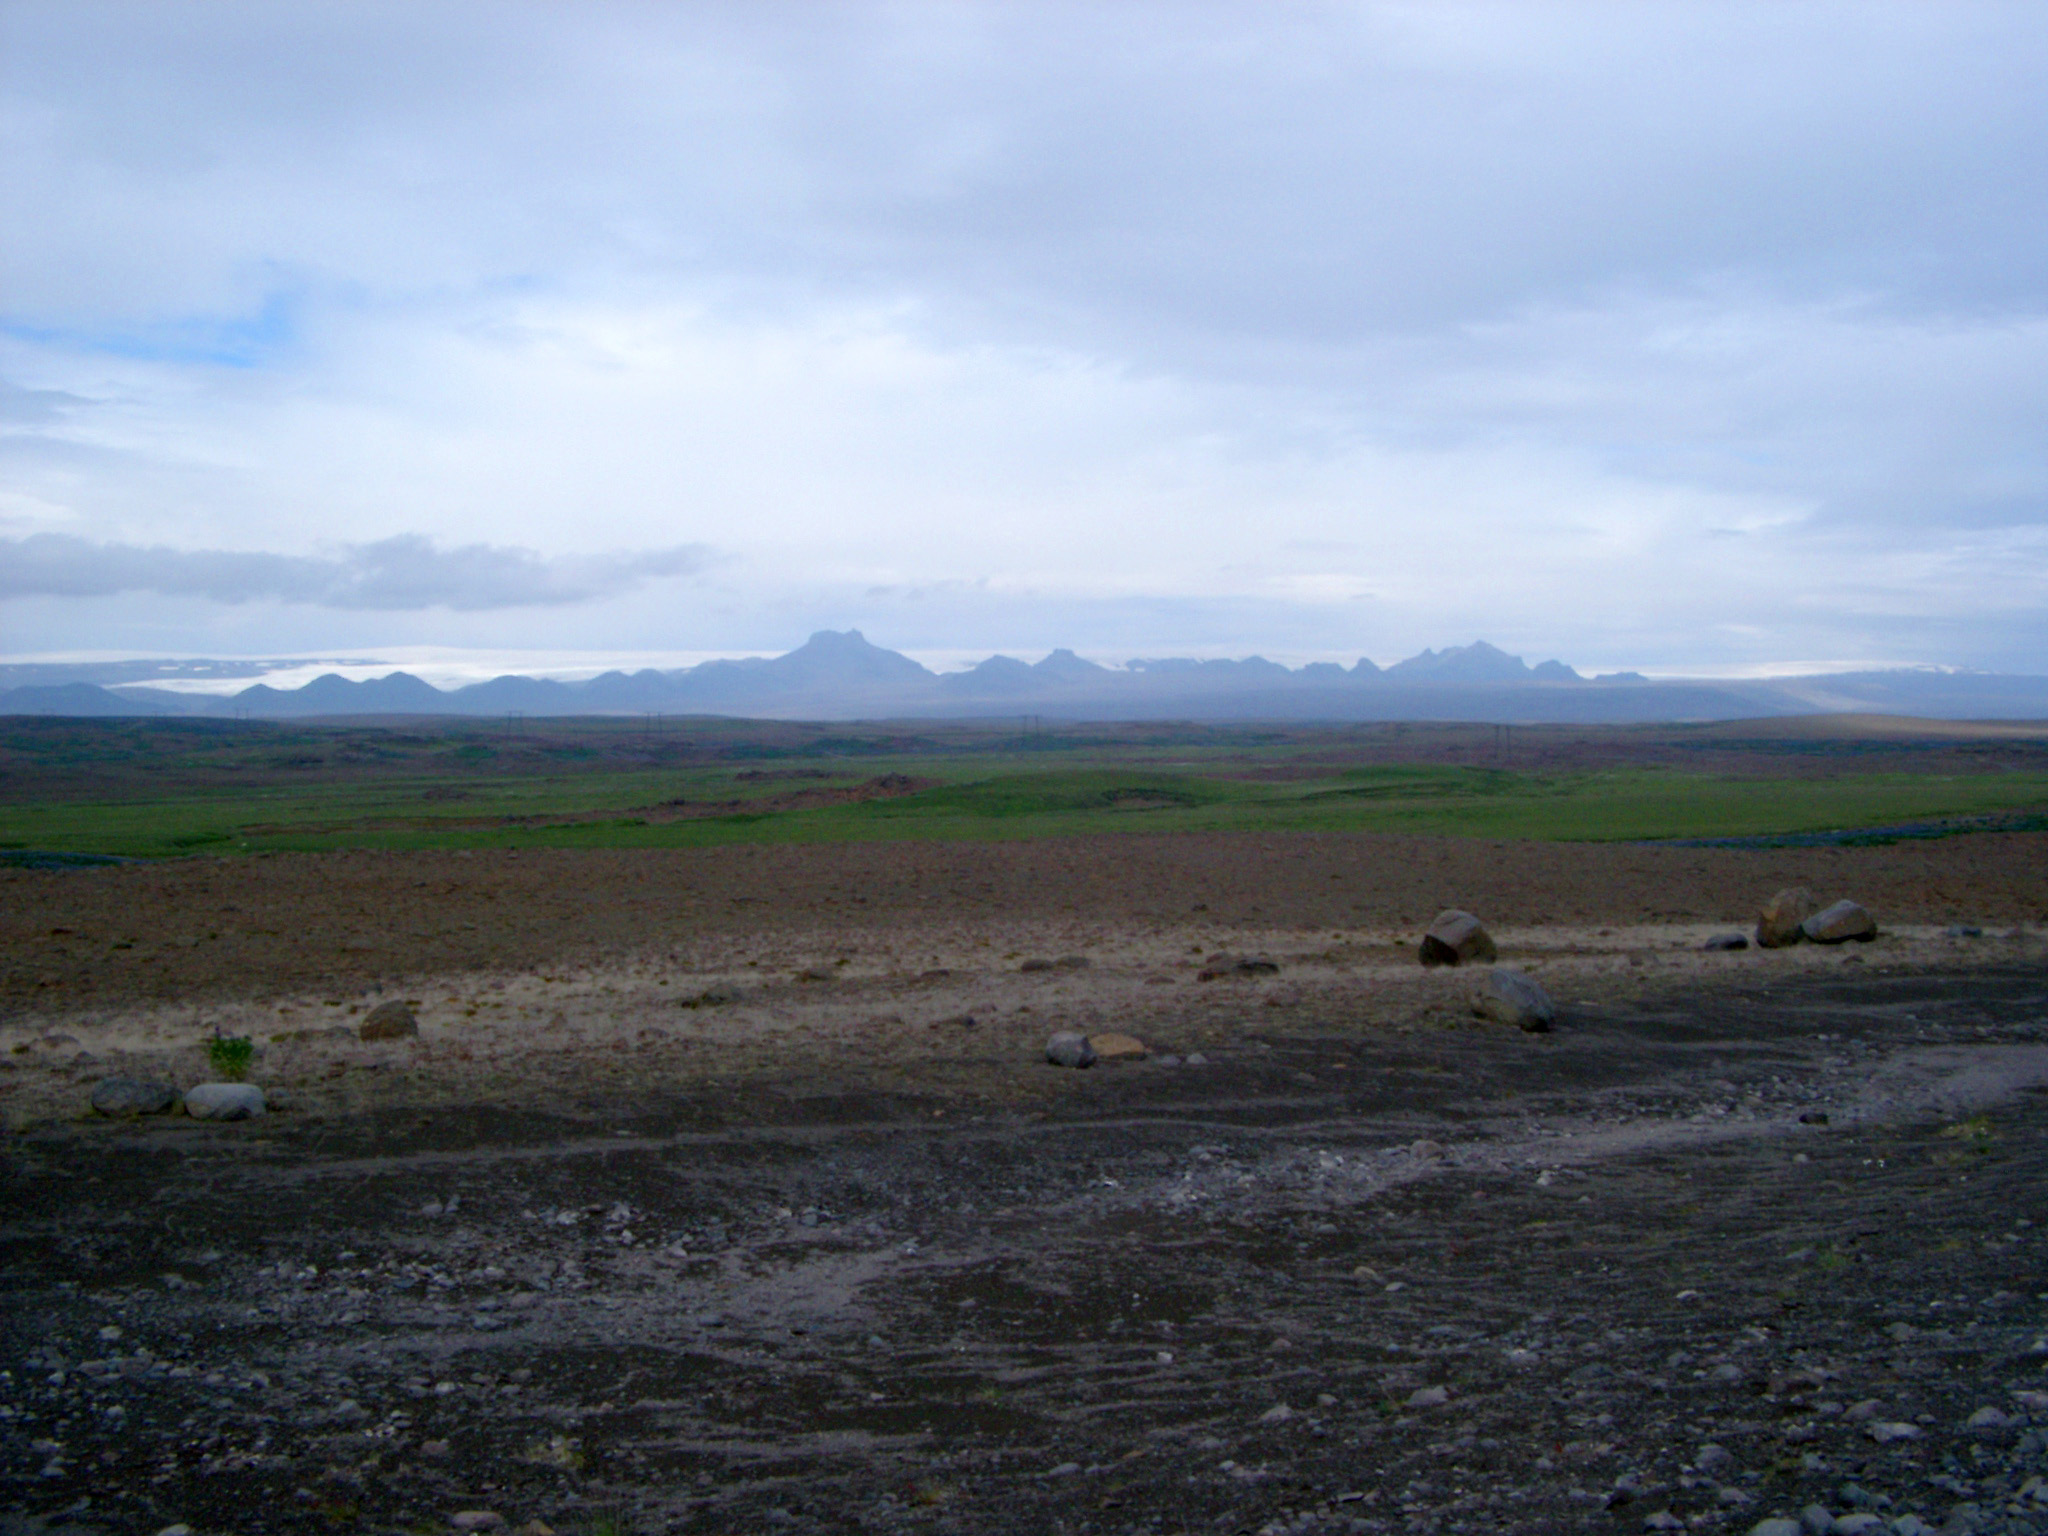 Remote Icelandic landscape with a stony path leading past a river with a range of volcanic mountain peaks in the distance